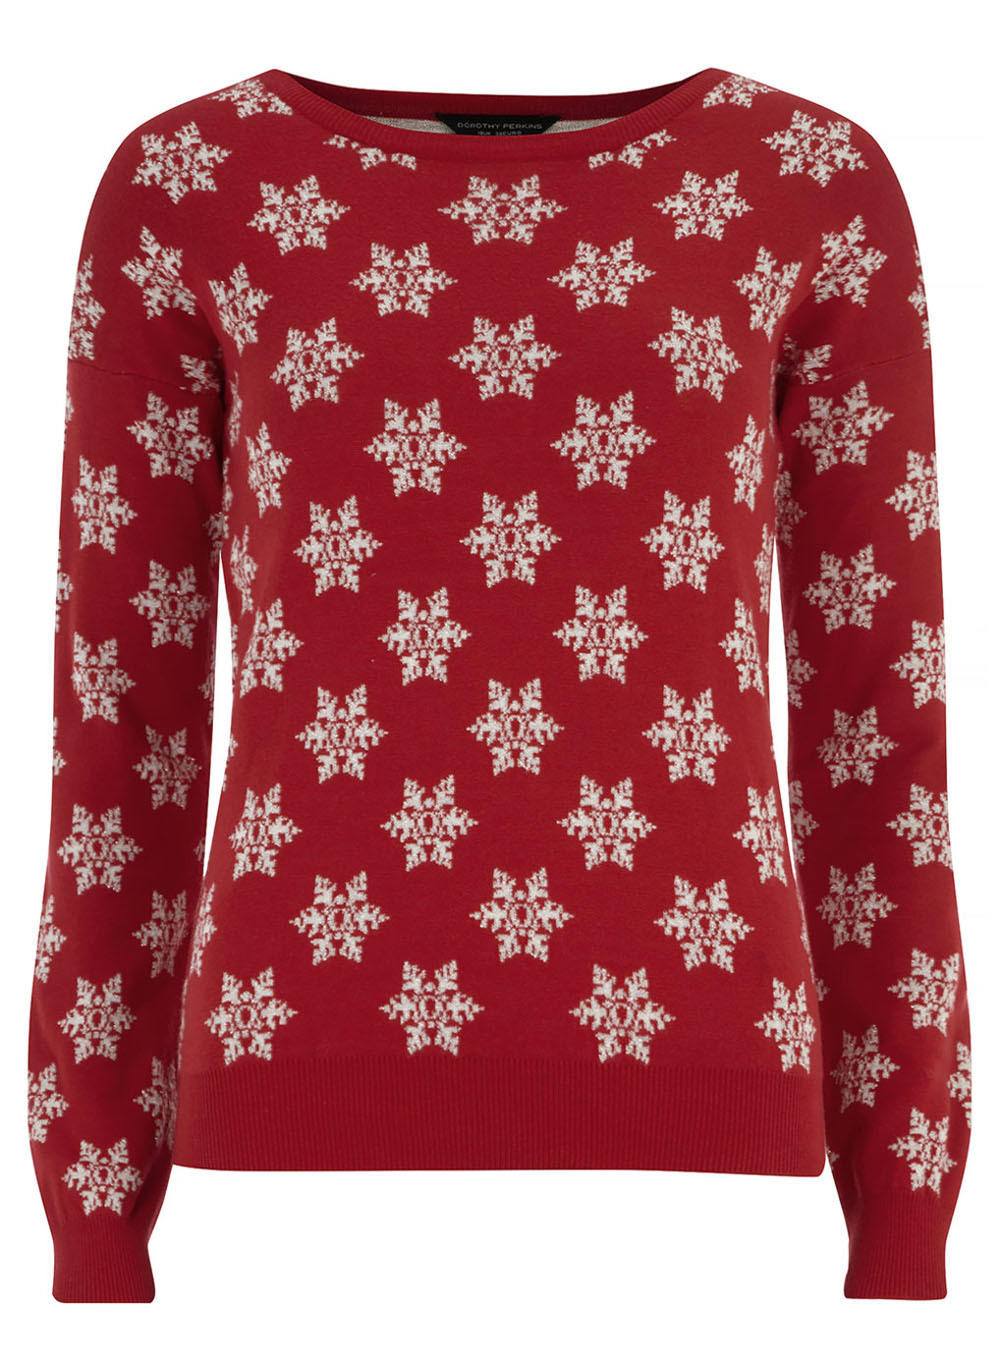 Meet the Not-So-Ugly Christmas Sweater | Houstonia